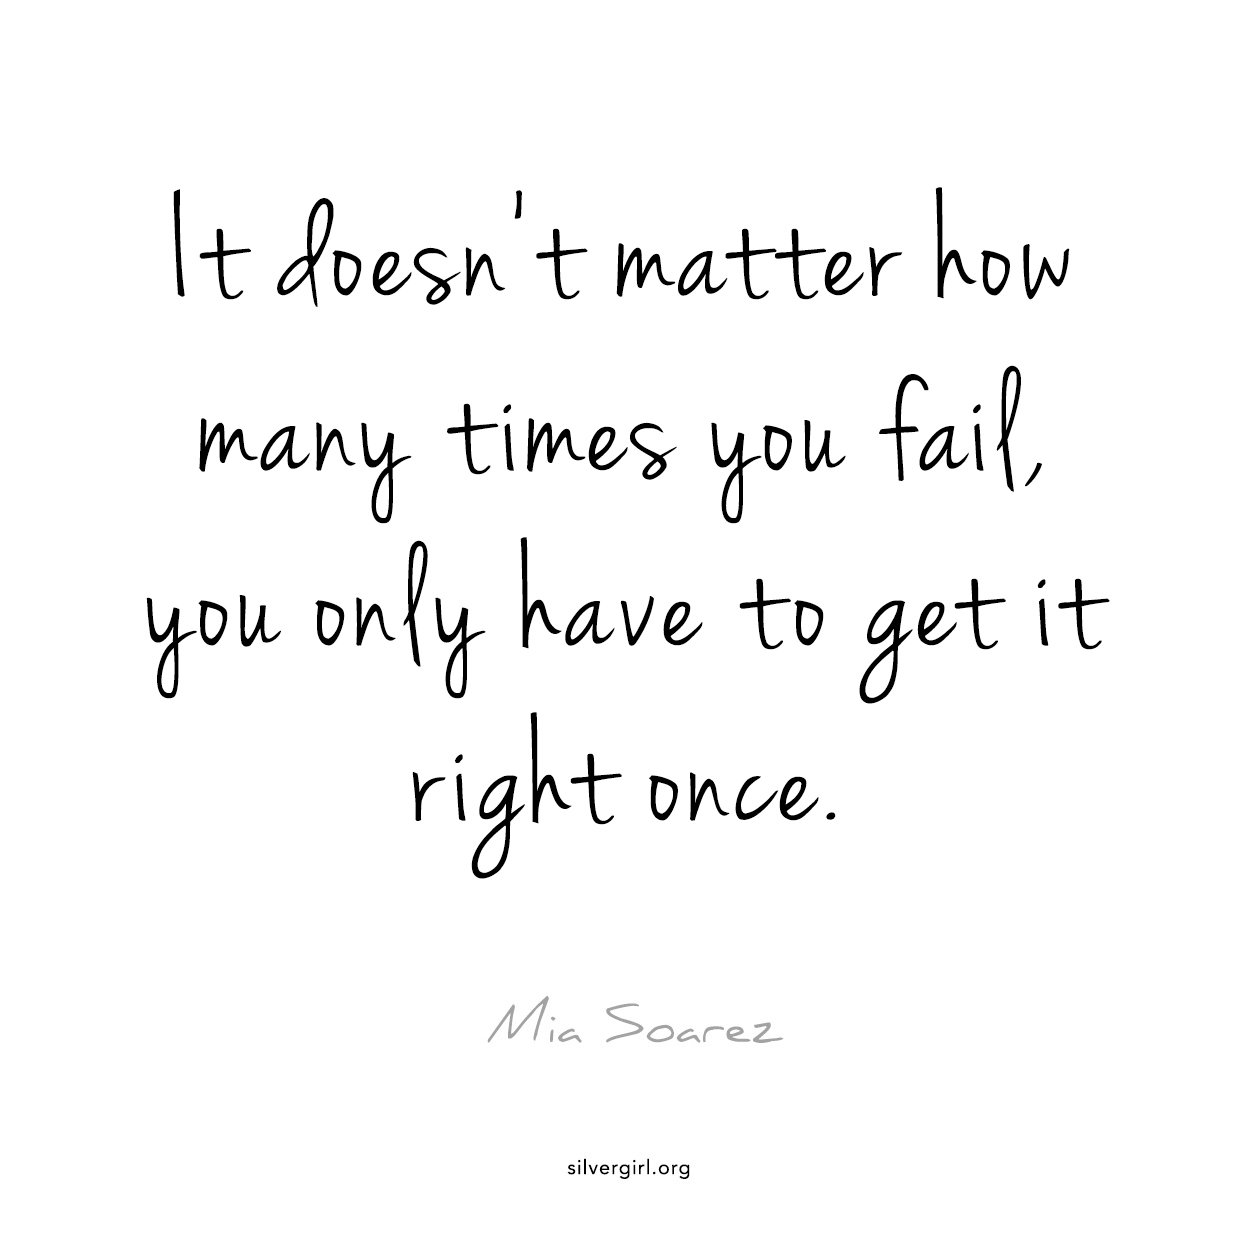 It doesn't matter how many time you fail, you only have to get it right once. - Mia Soarez